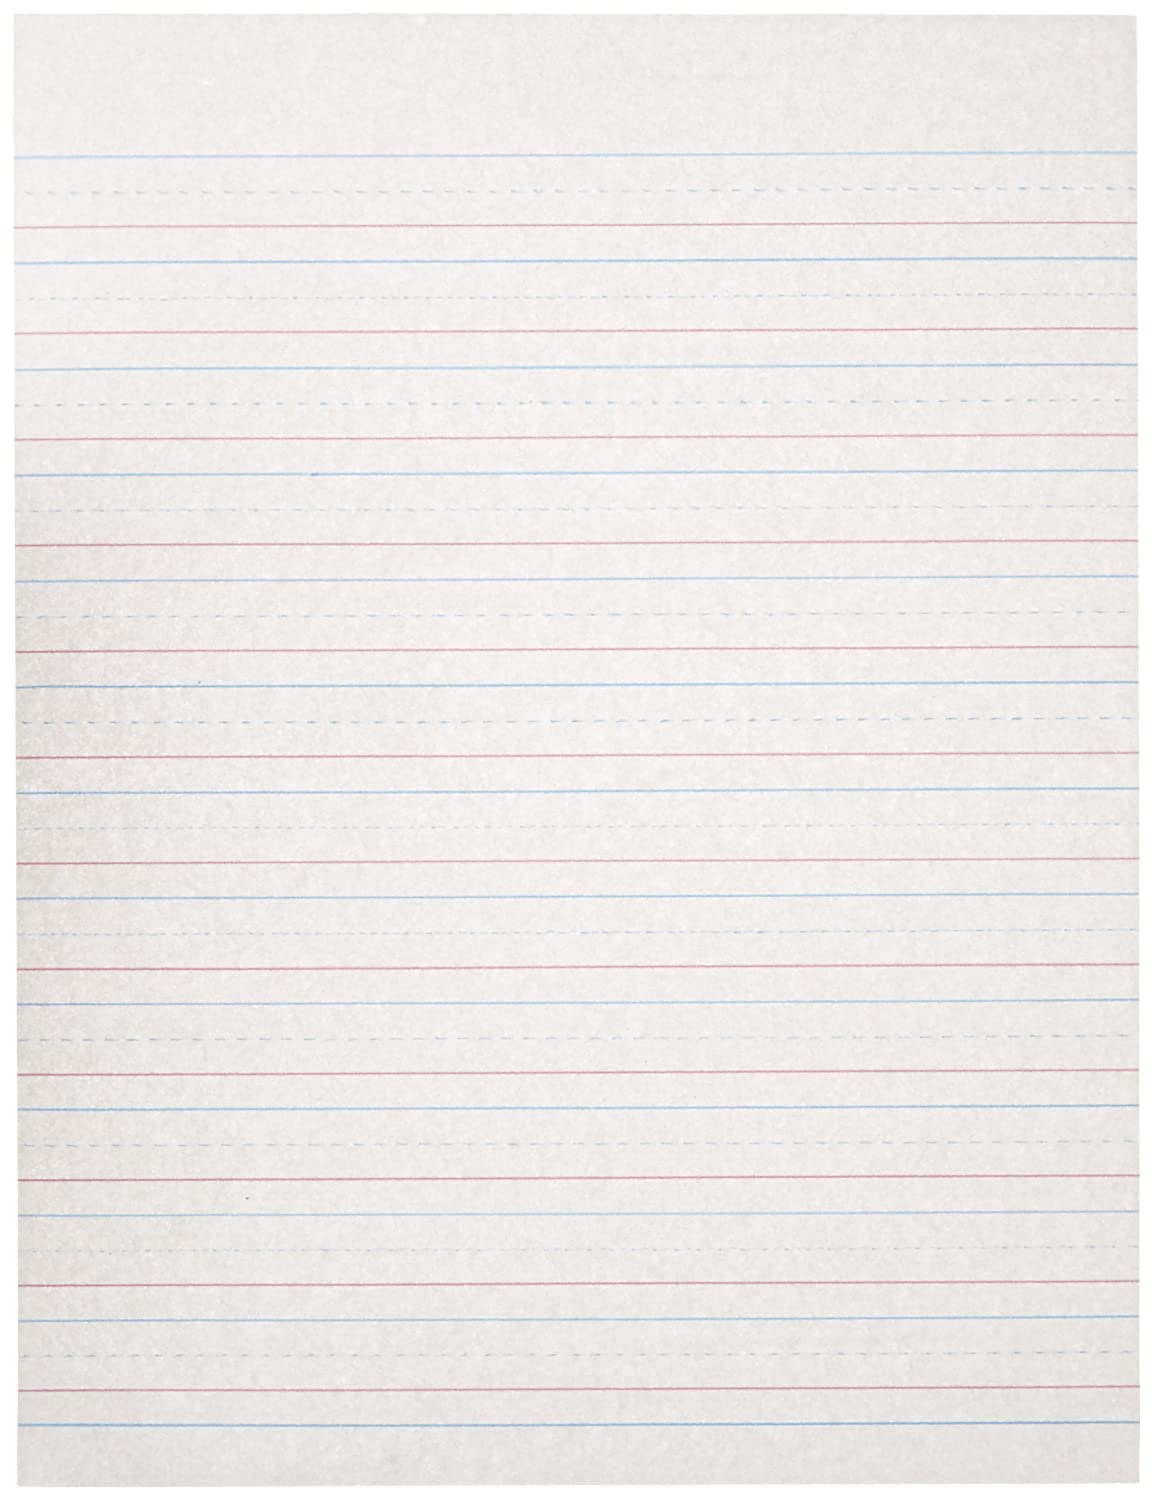 lined writing paper with picture space Notebook paper notebook lined paper pdf generator - like looseleaf or filler  paper  double lined writing and penmanship paper two equally spaced.